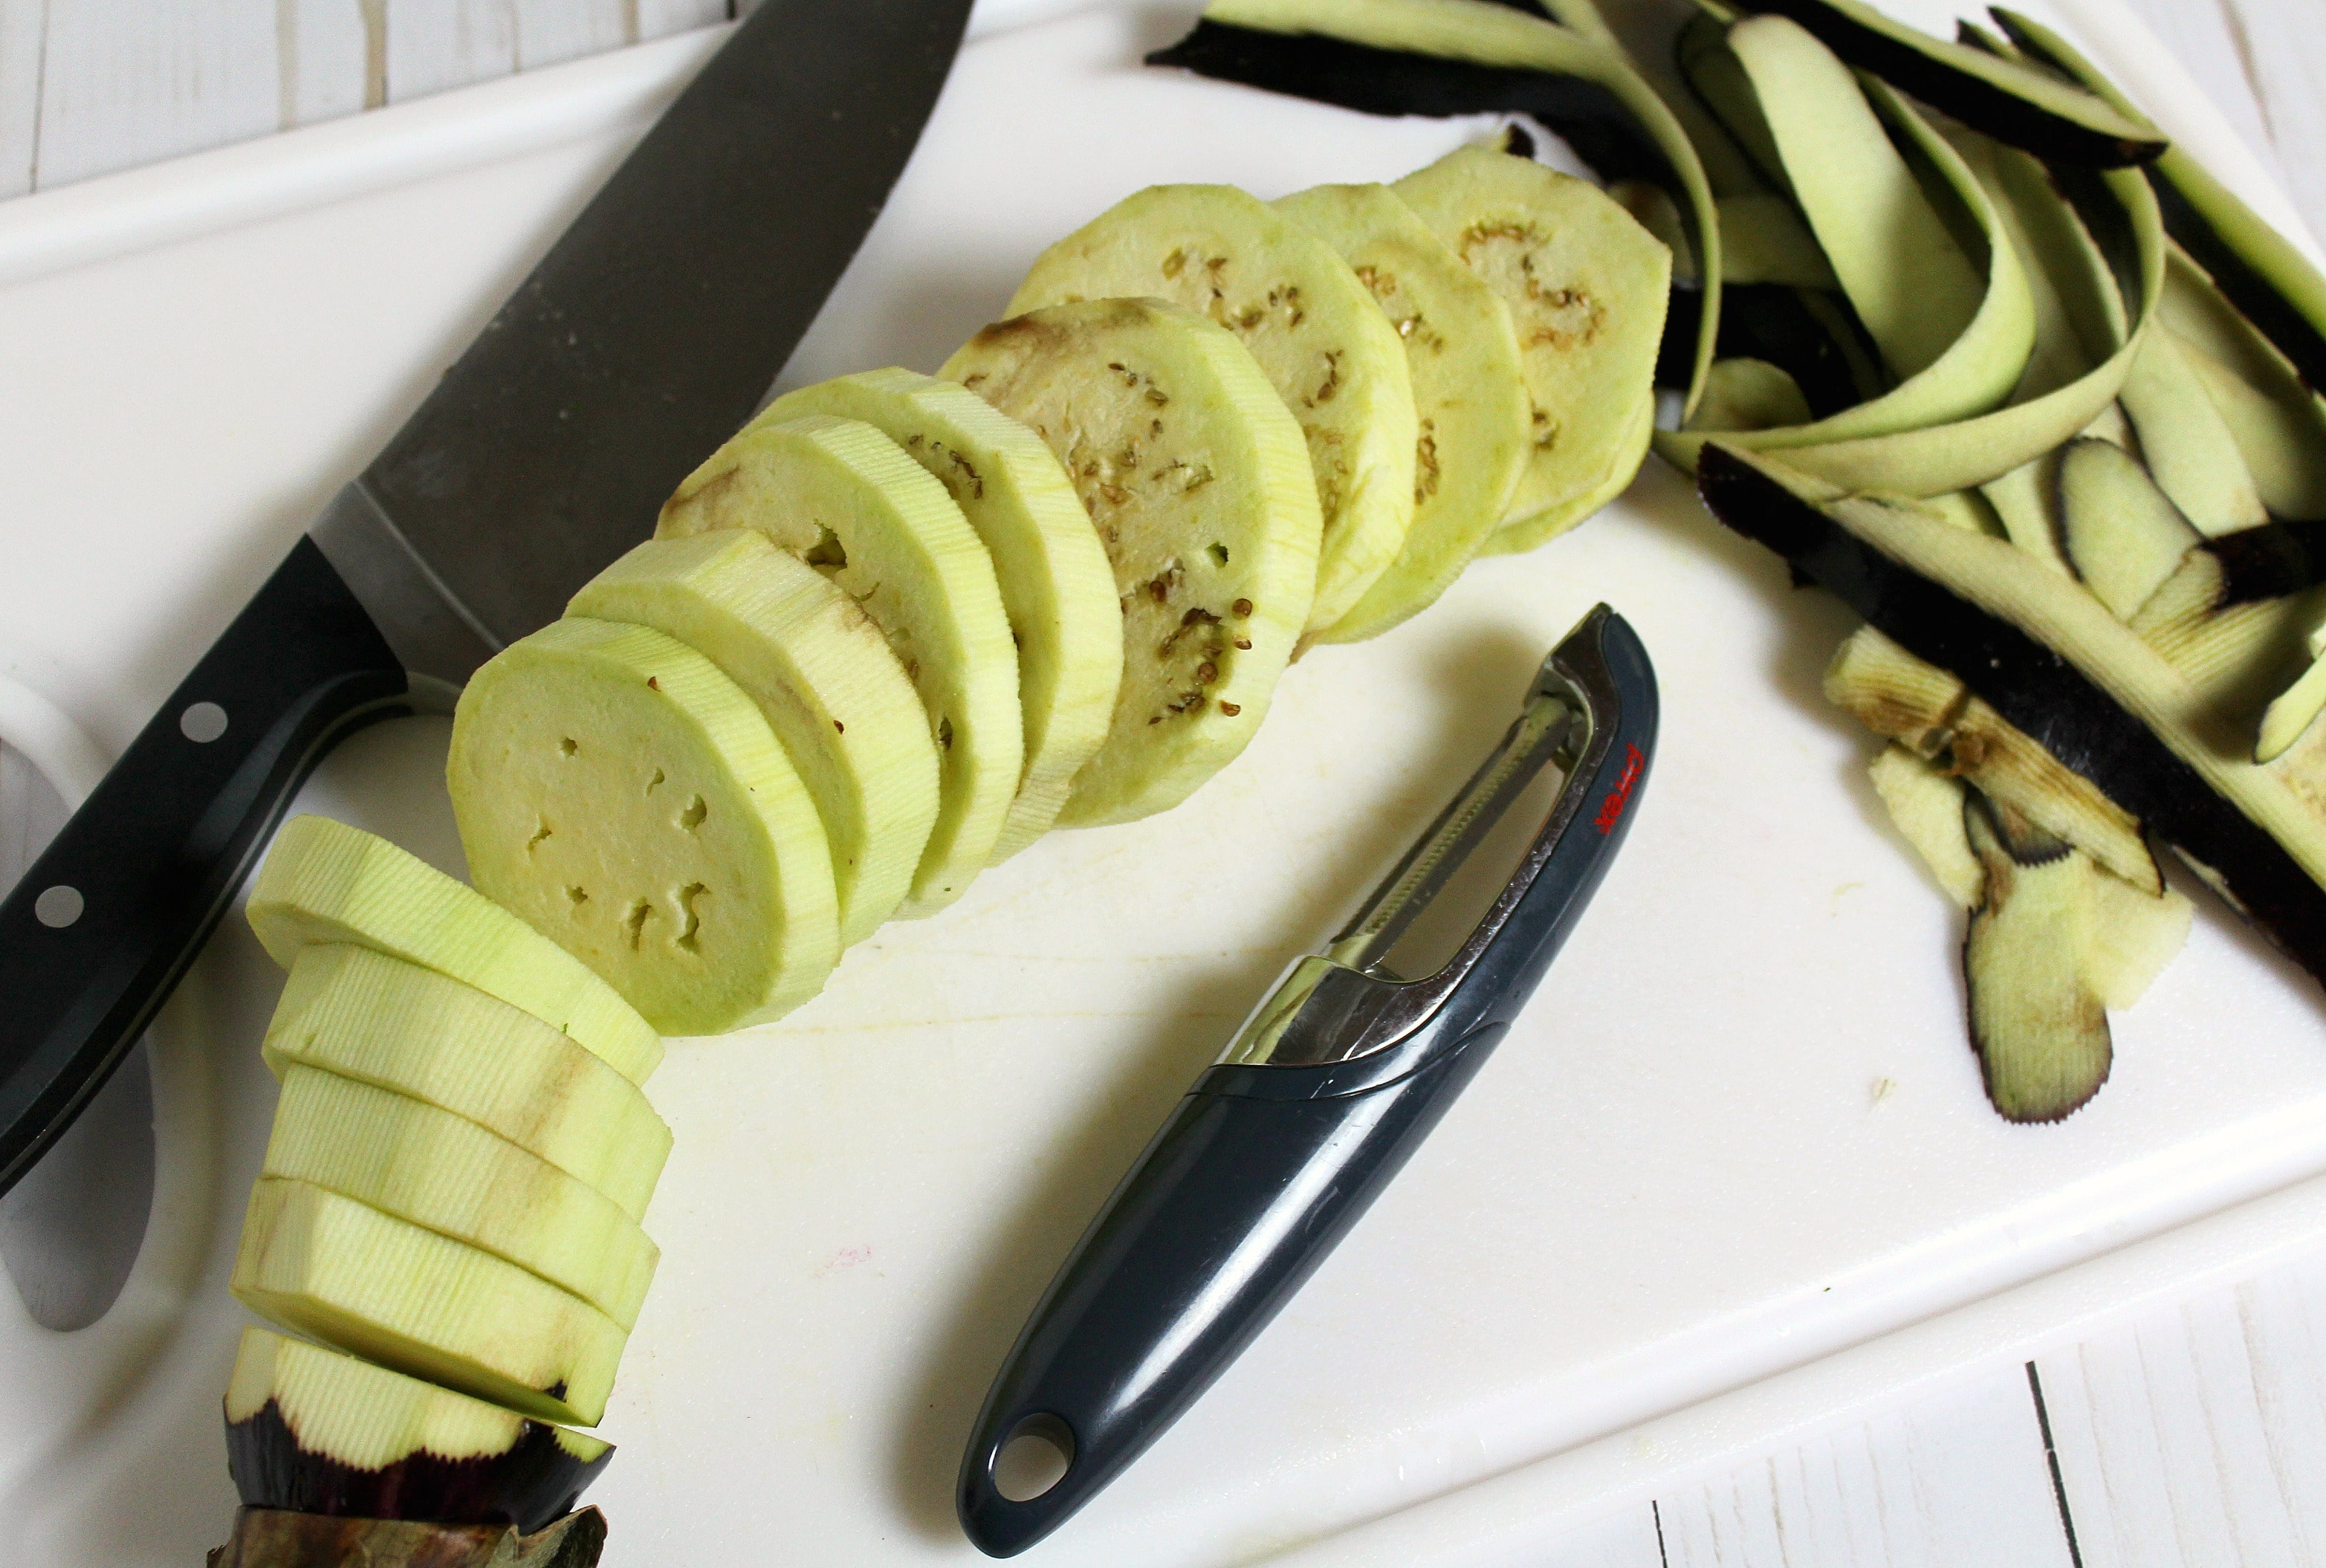 Peel the eggplant and cut into thick slices.